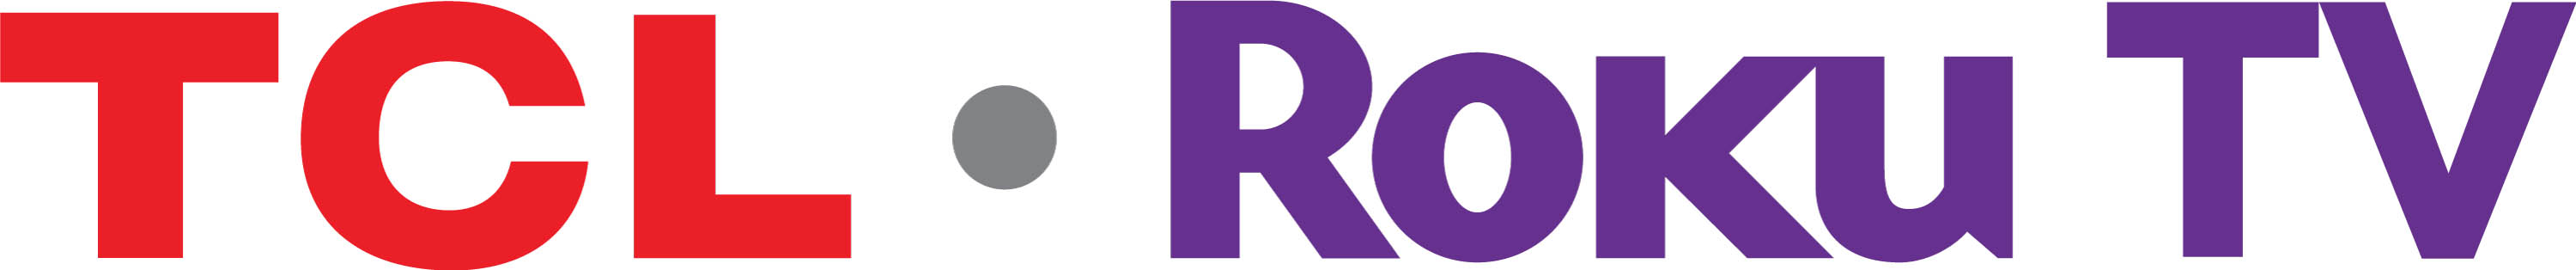 Say Good-Bye to 4K, Roku and TCL Team-Up for 8K | The Nerdy